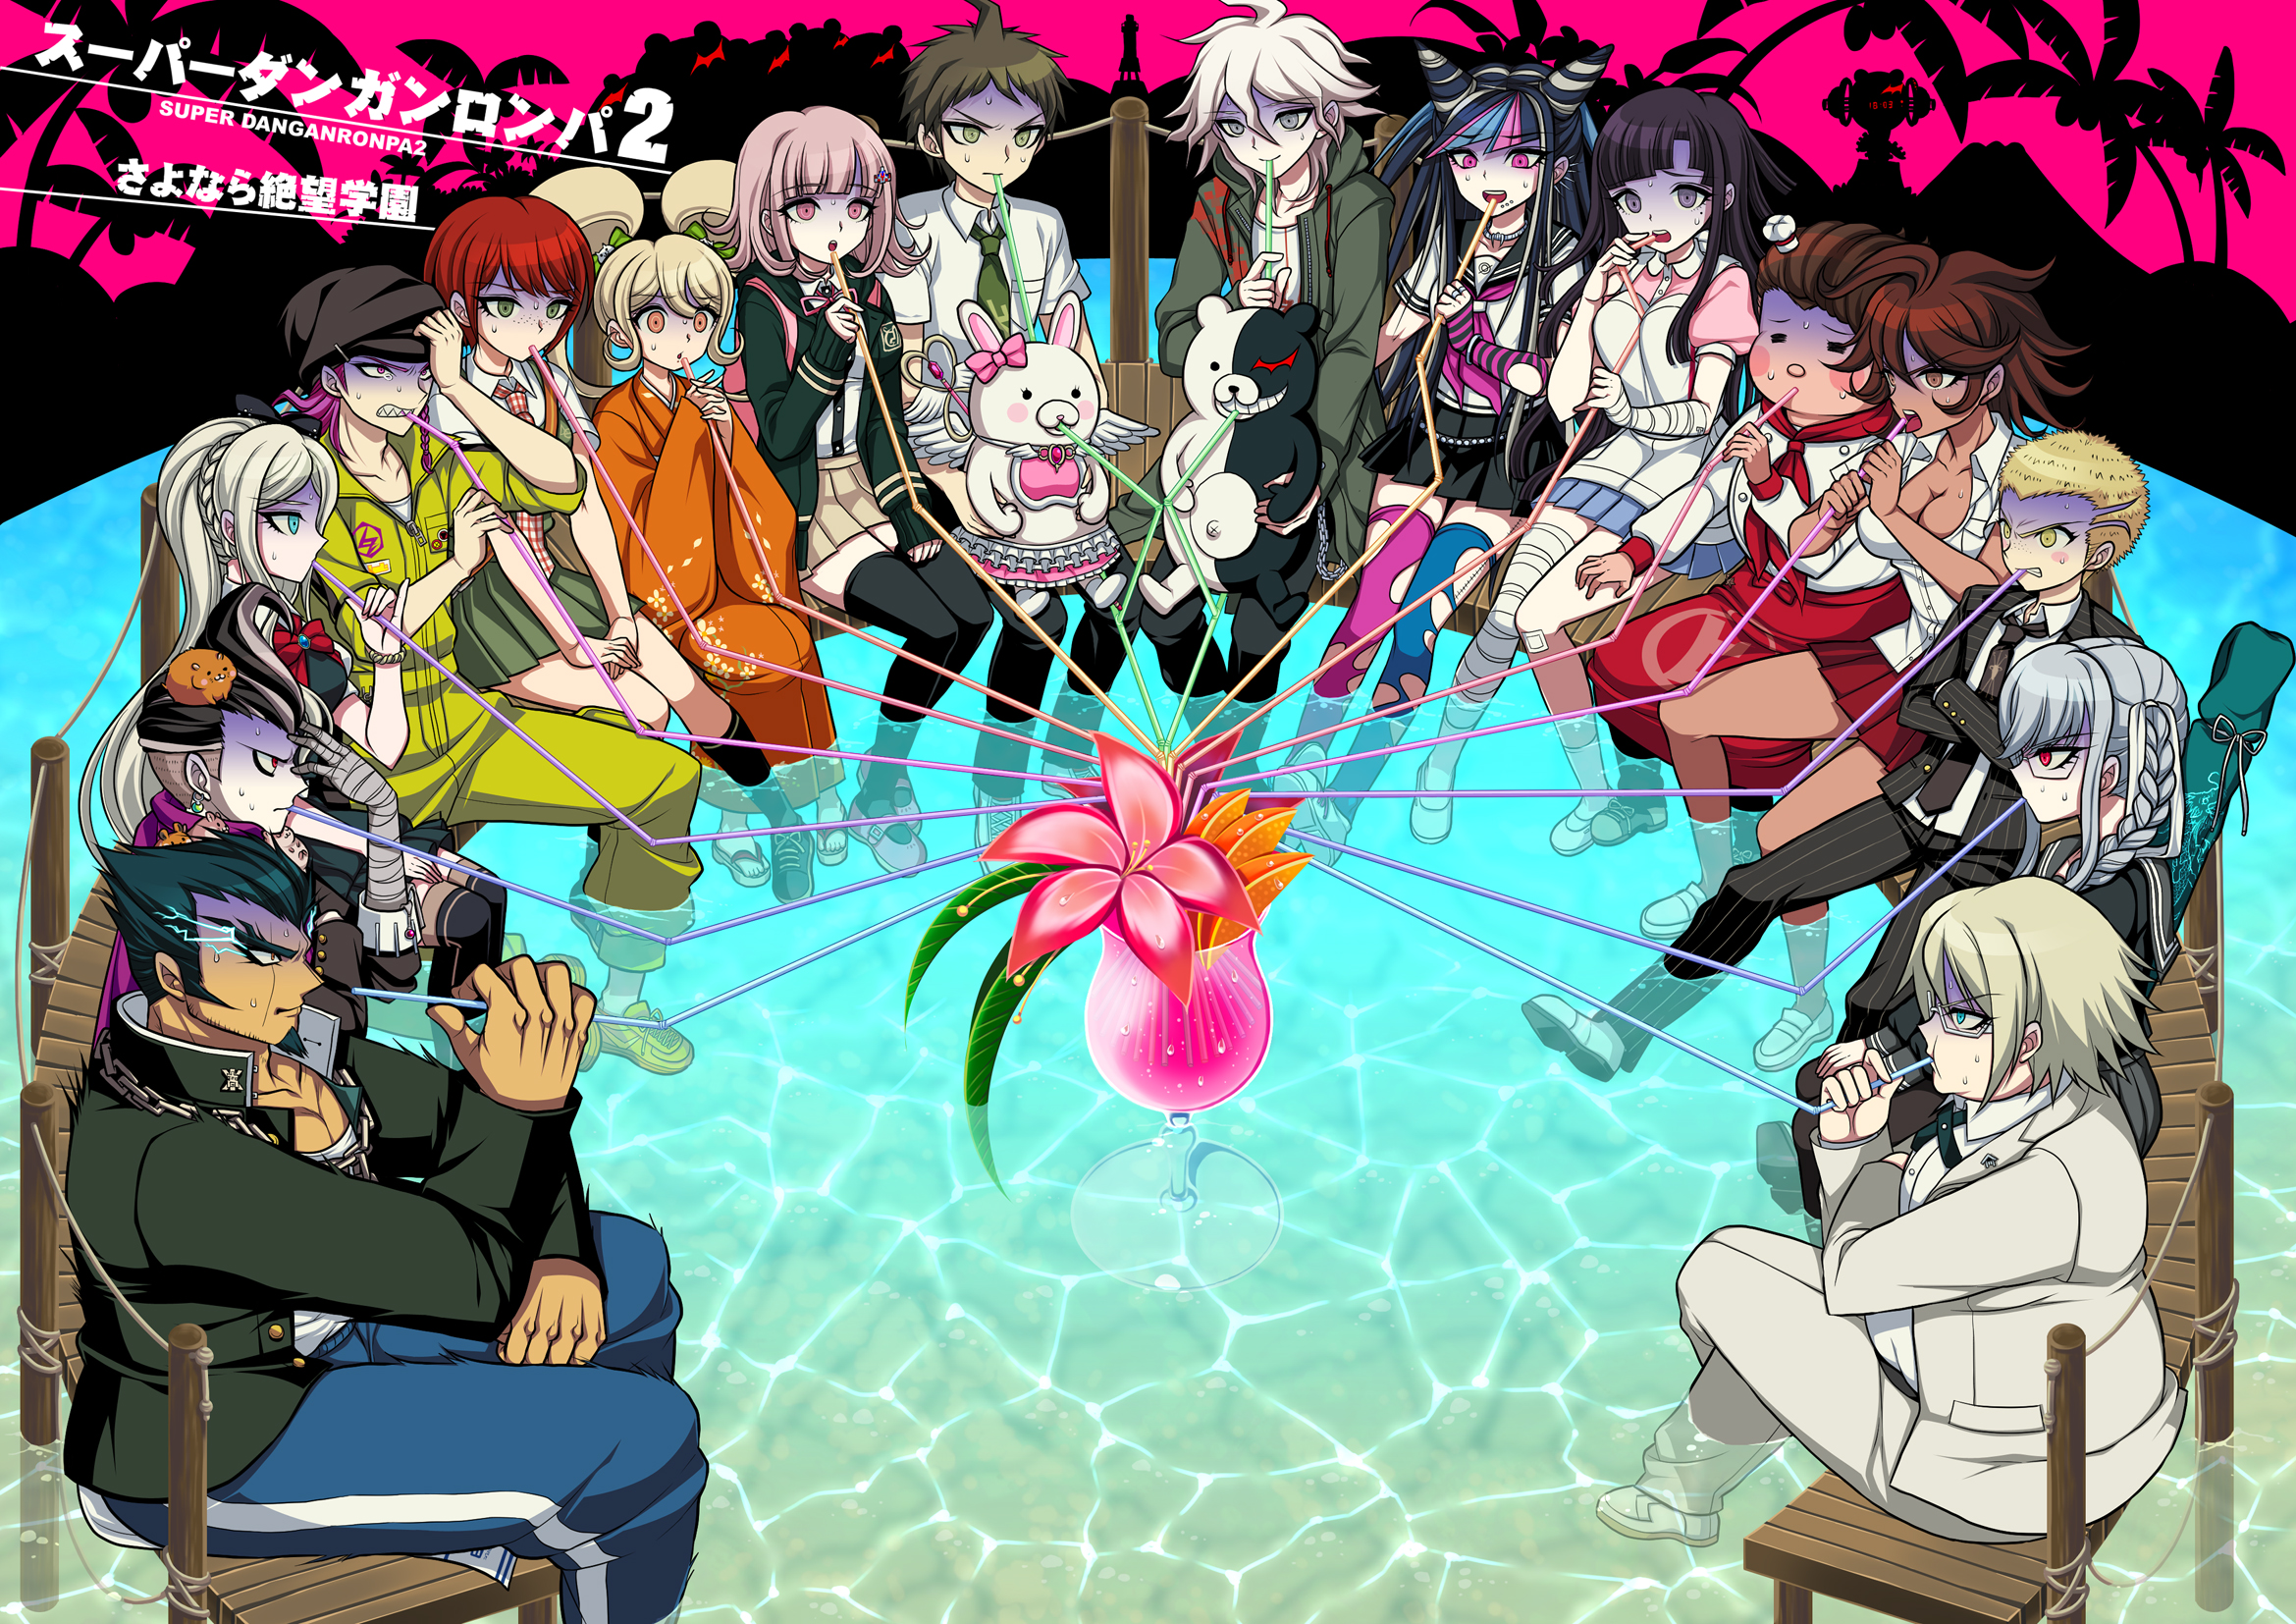 Danganronpa 2: Goodbye Despair Review | Middle Of Nowhere Gaming